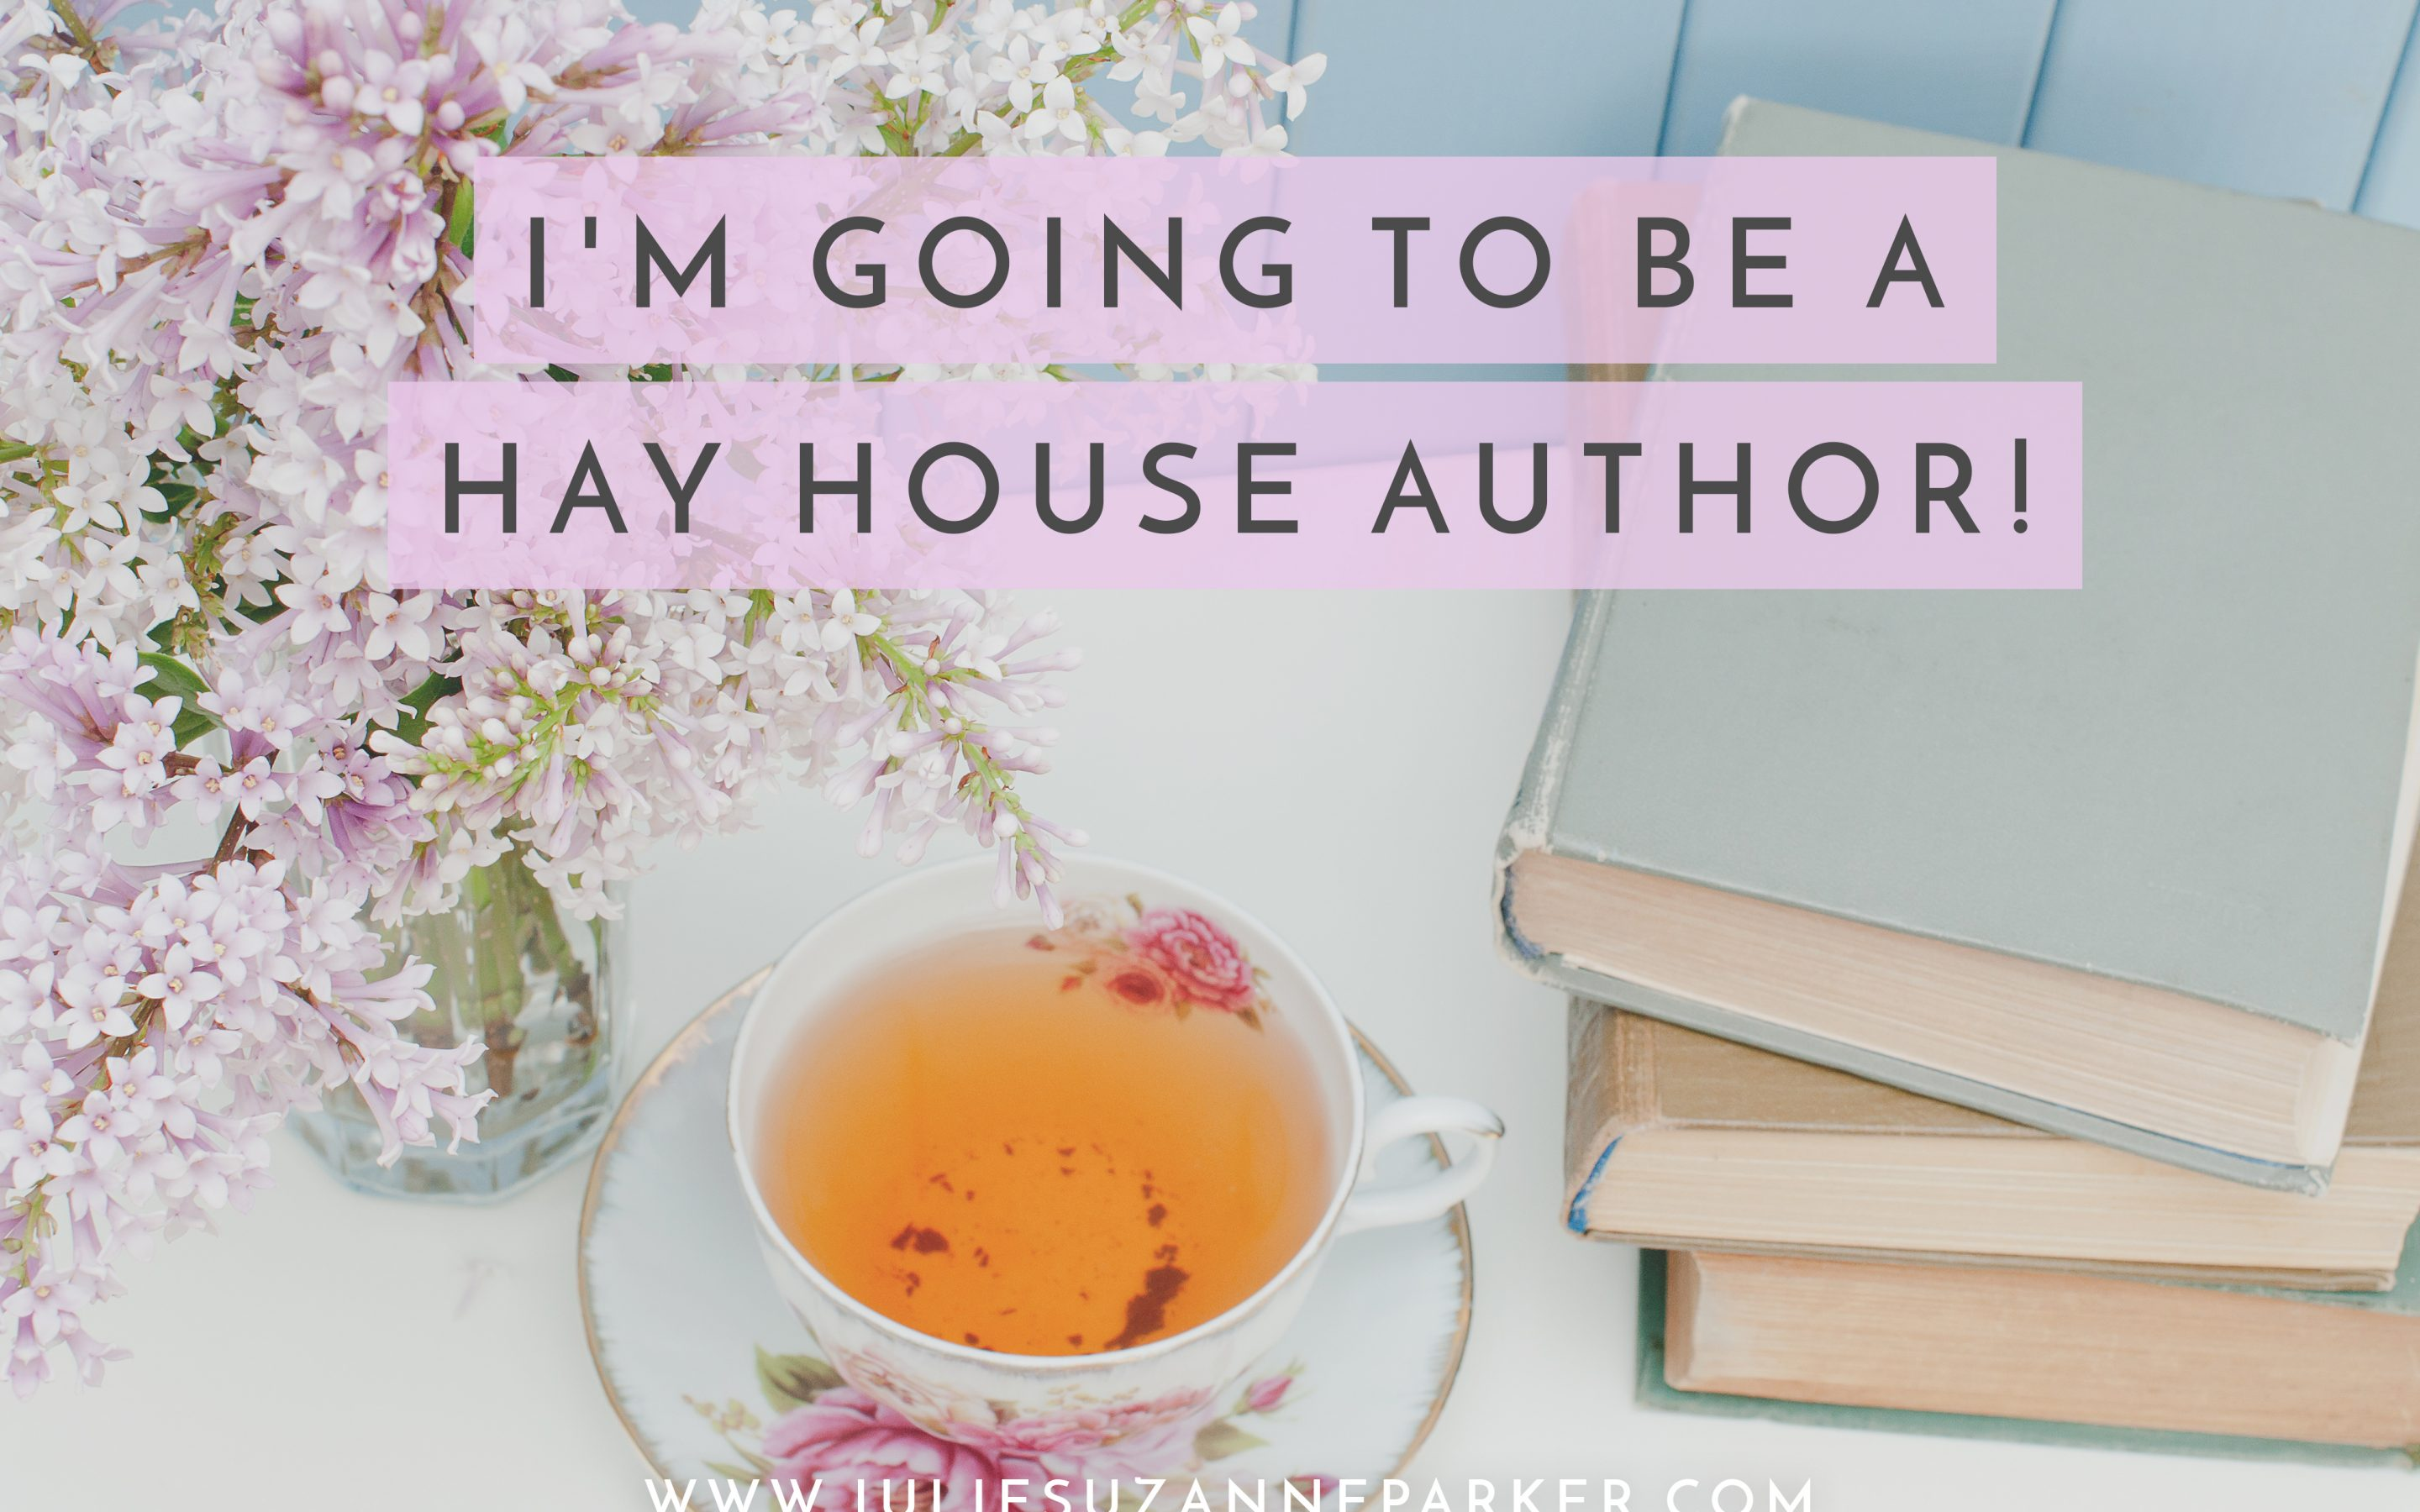 I'm Going To Be a Hay House Author!